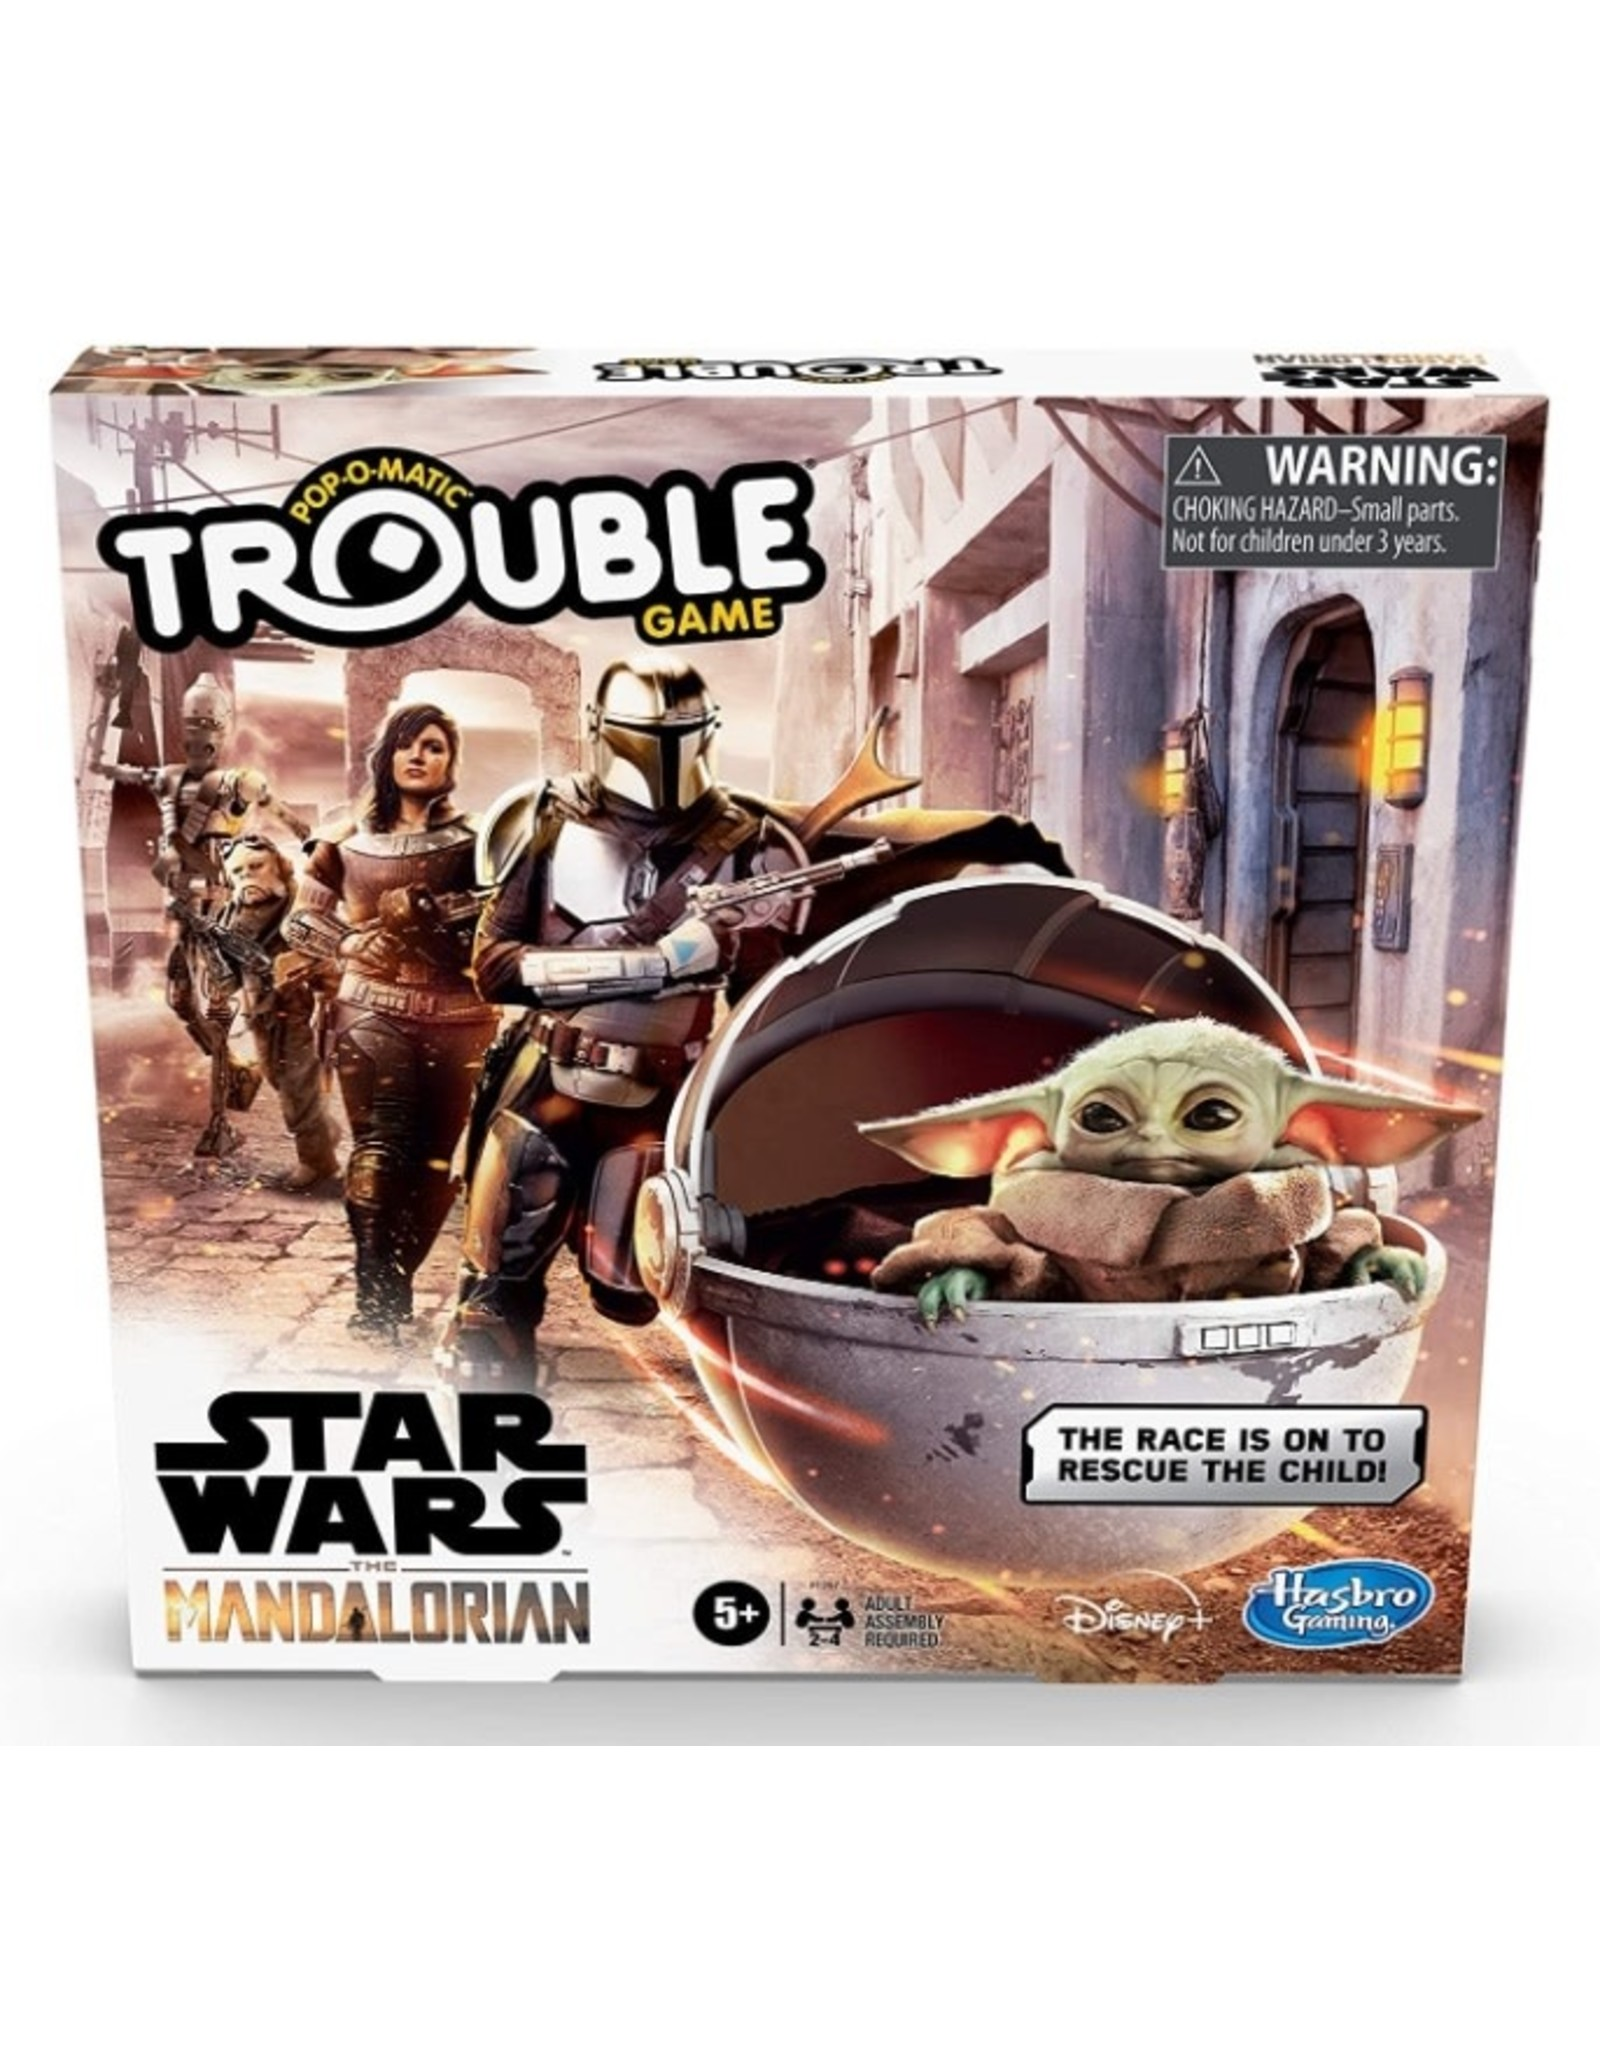 Trouble - Star Wars The Mandalorian edition